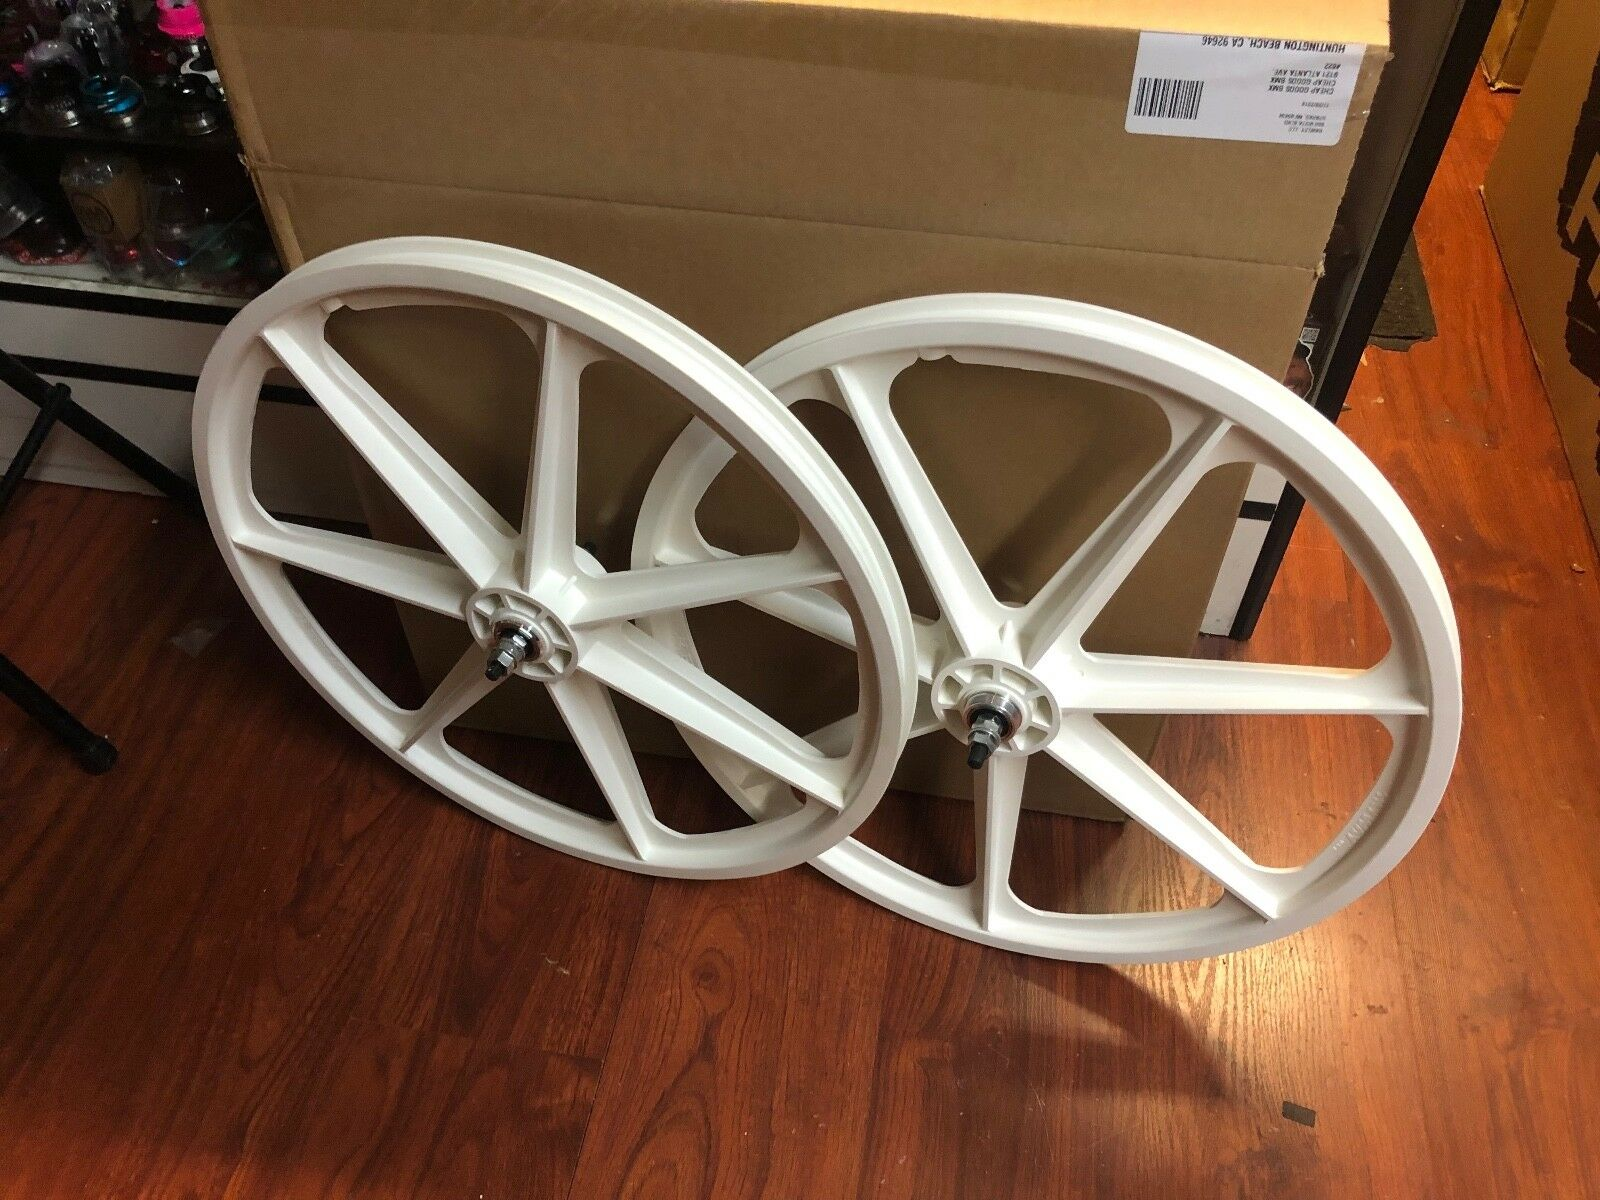 SKYWAY 24 INCH TUFF MAG WHEEL SET WHITE  BMX BIKE TUFFS MAGS WHEELS RETRO 24